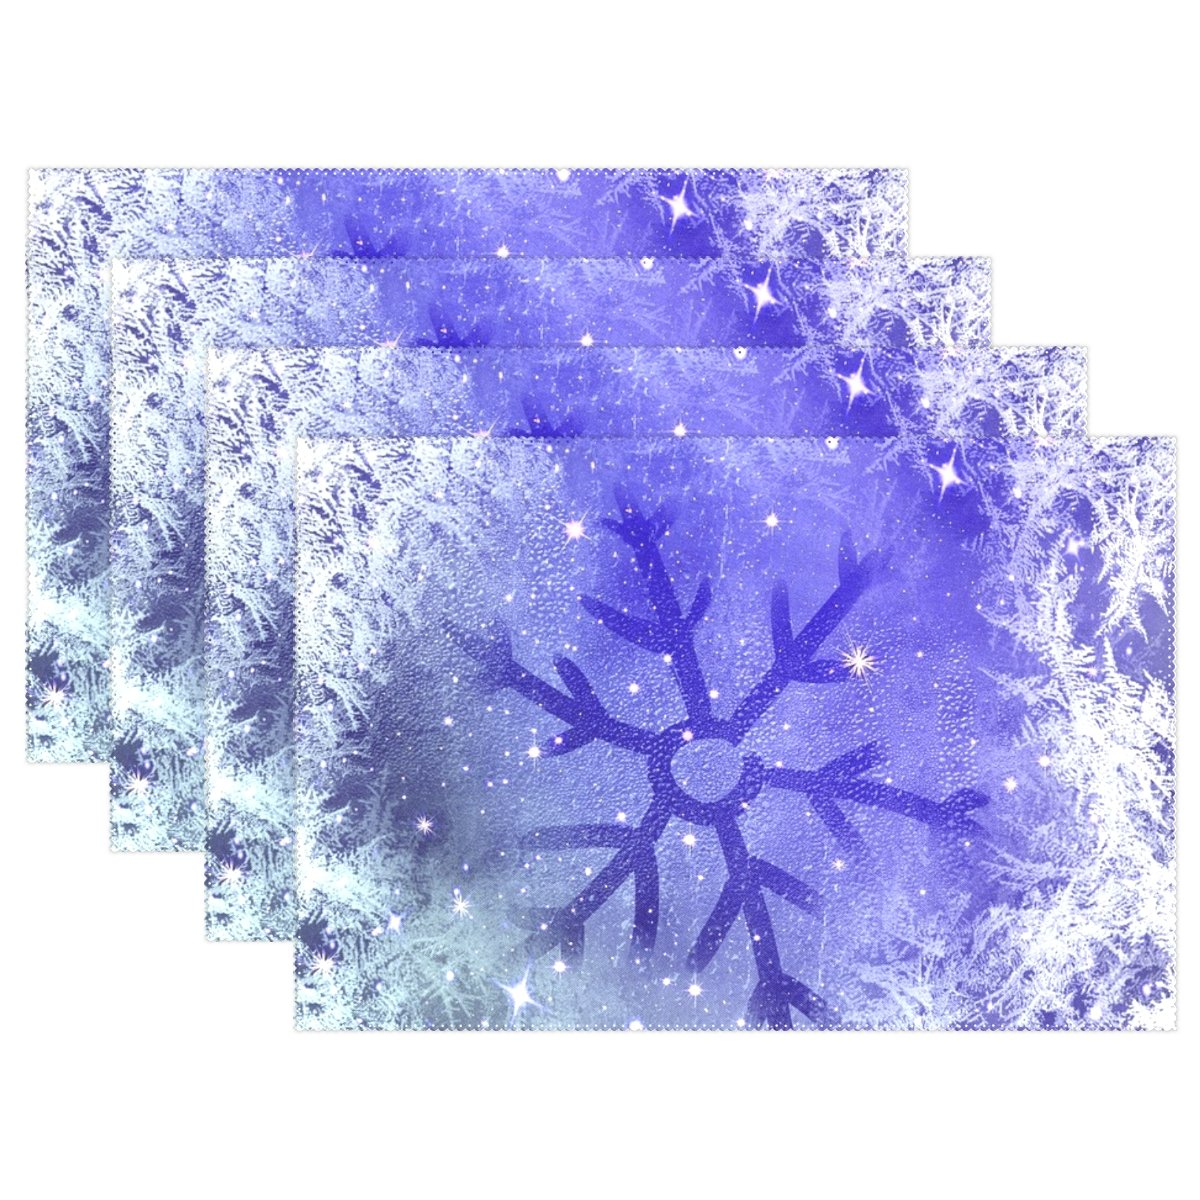 YPink Ice Flowers Frost Winter Eiskristalle Cold Ice Placemats Set of 4熱断熱材Stain Resistant forダイニングテーブル耐久性ノンスリップキッチンテーブルPlaceマット   B07FTHLKVC